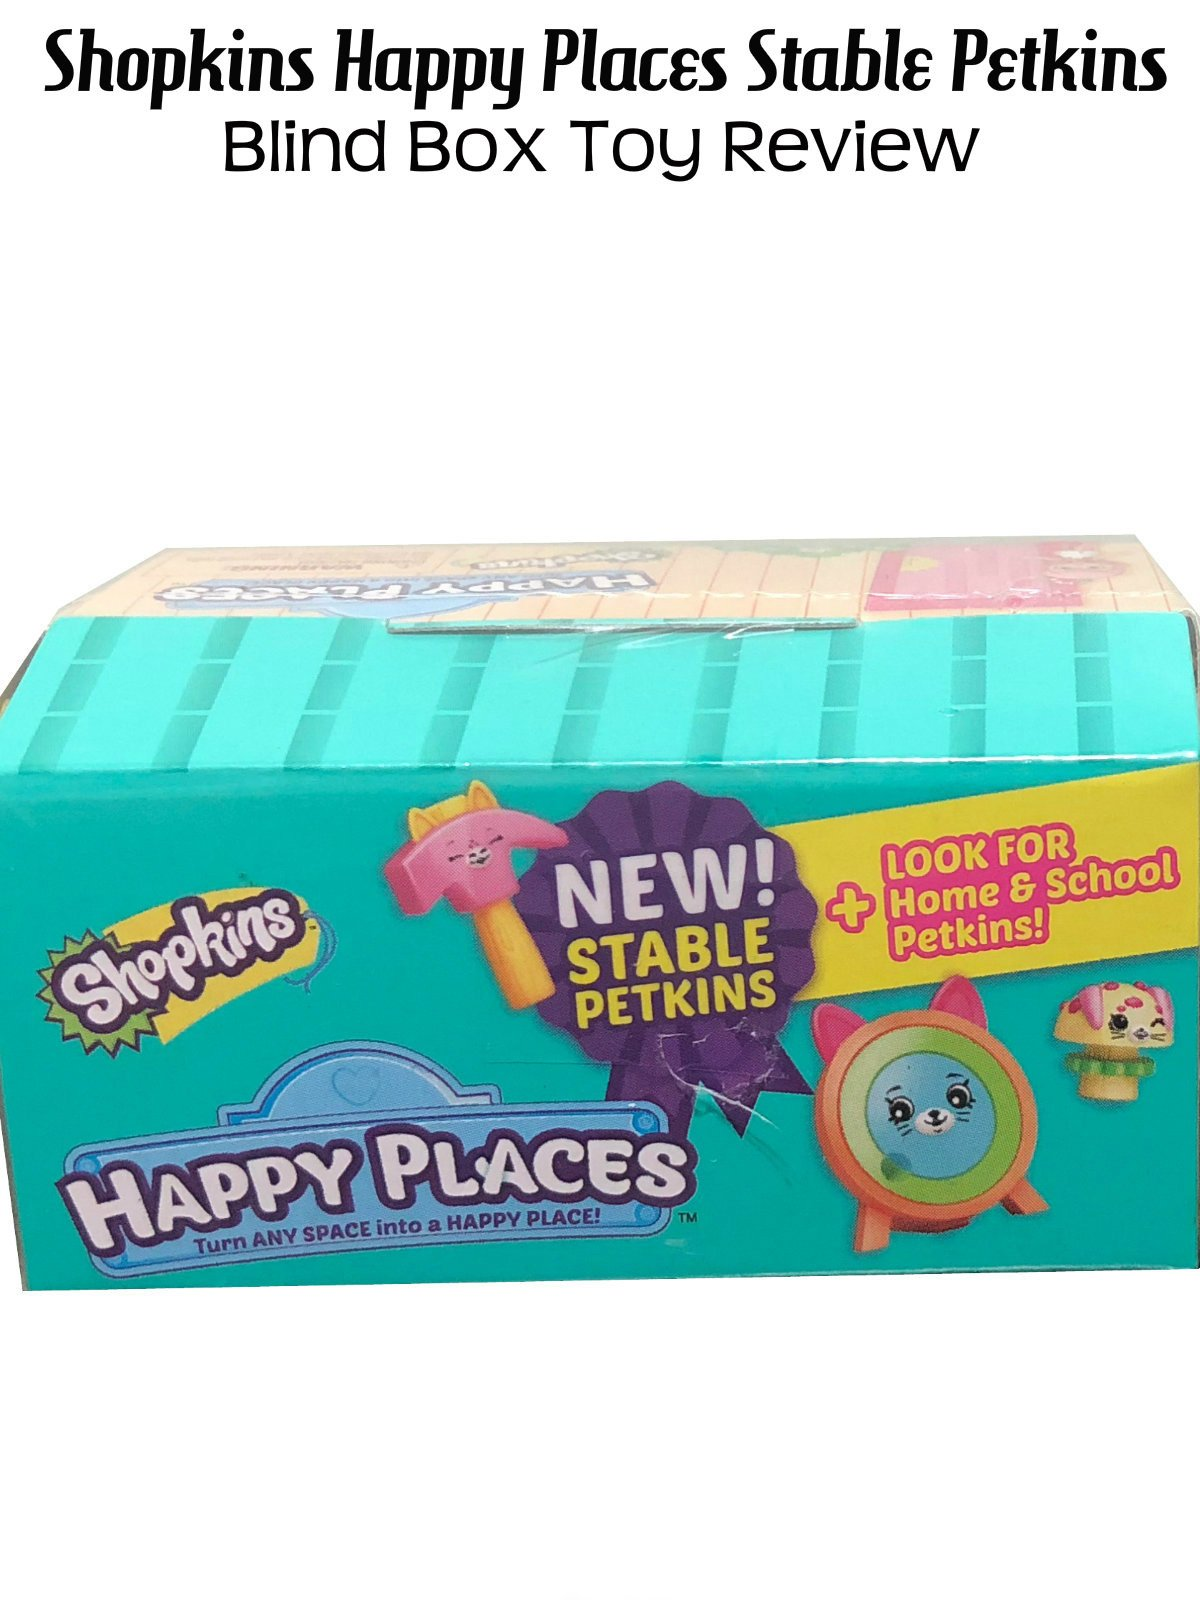 Review: Shopkins Happy Places Stable Petkins Blind Box Toy Review